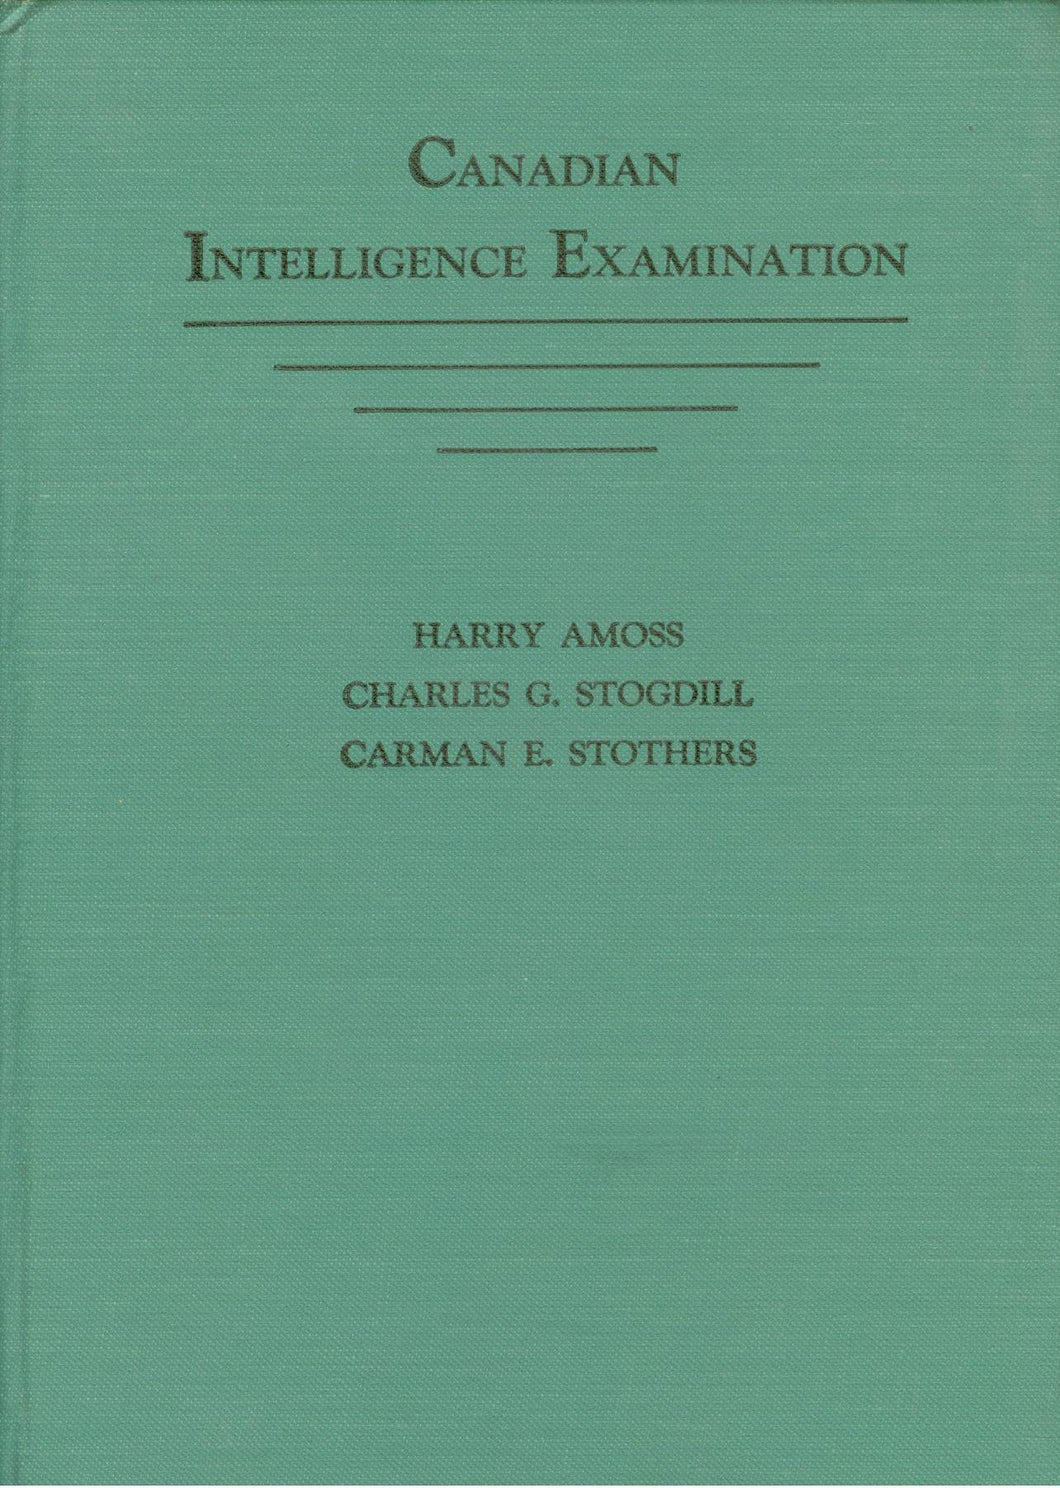 Canadian Intelligence Examination